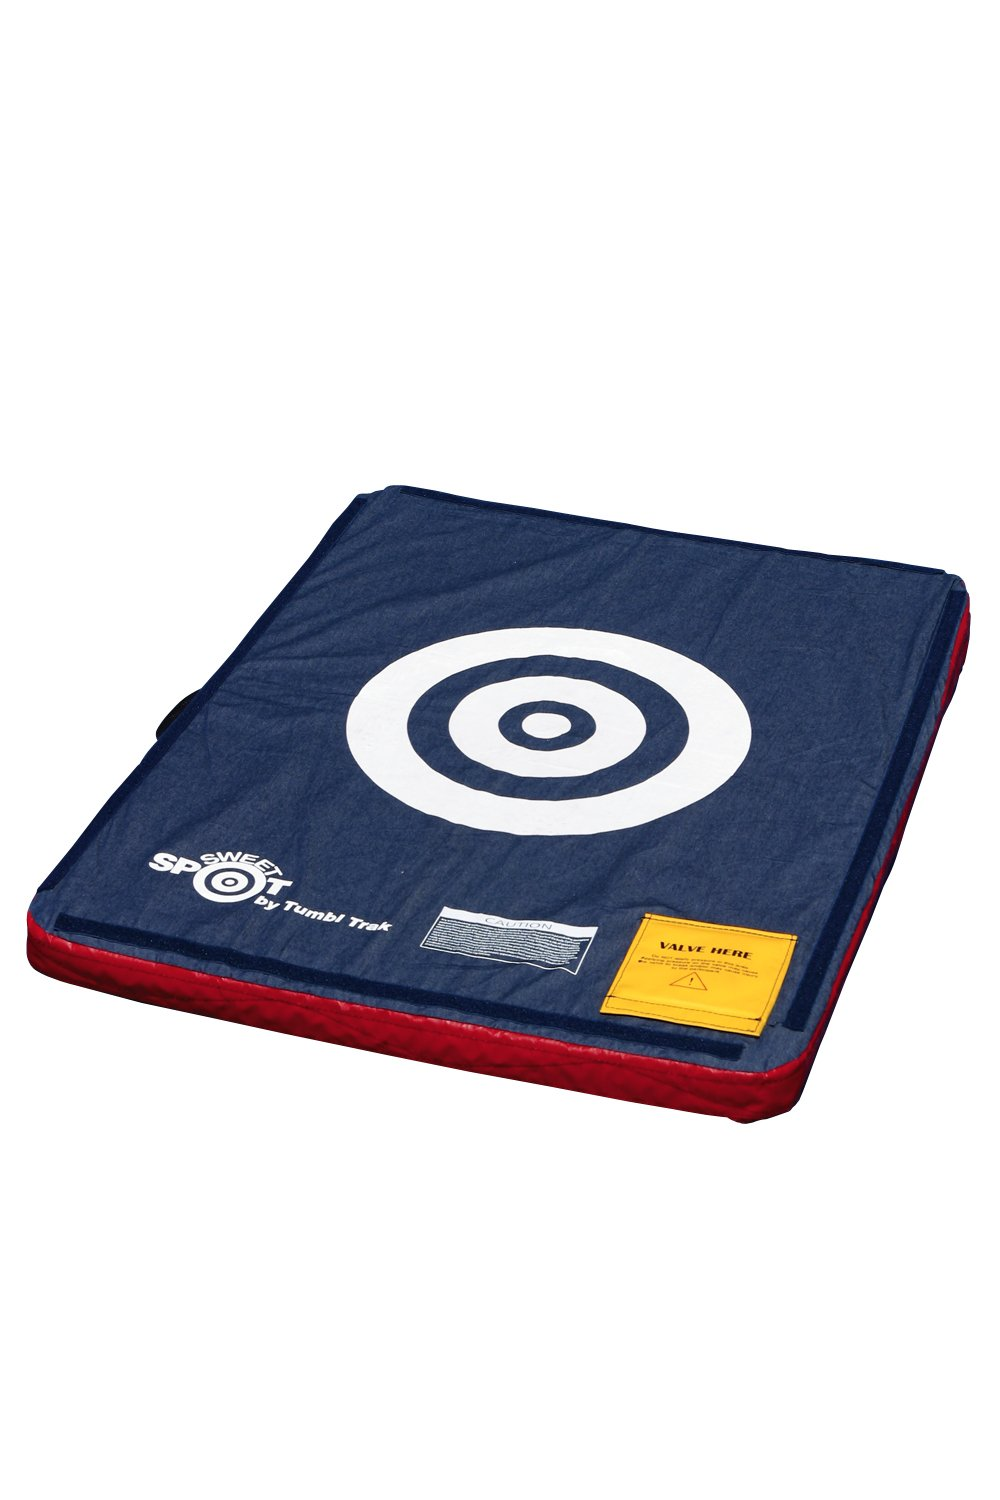 Tumbl Trak Sweet Spot with Denim Cover and Hand Pump